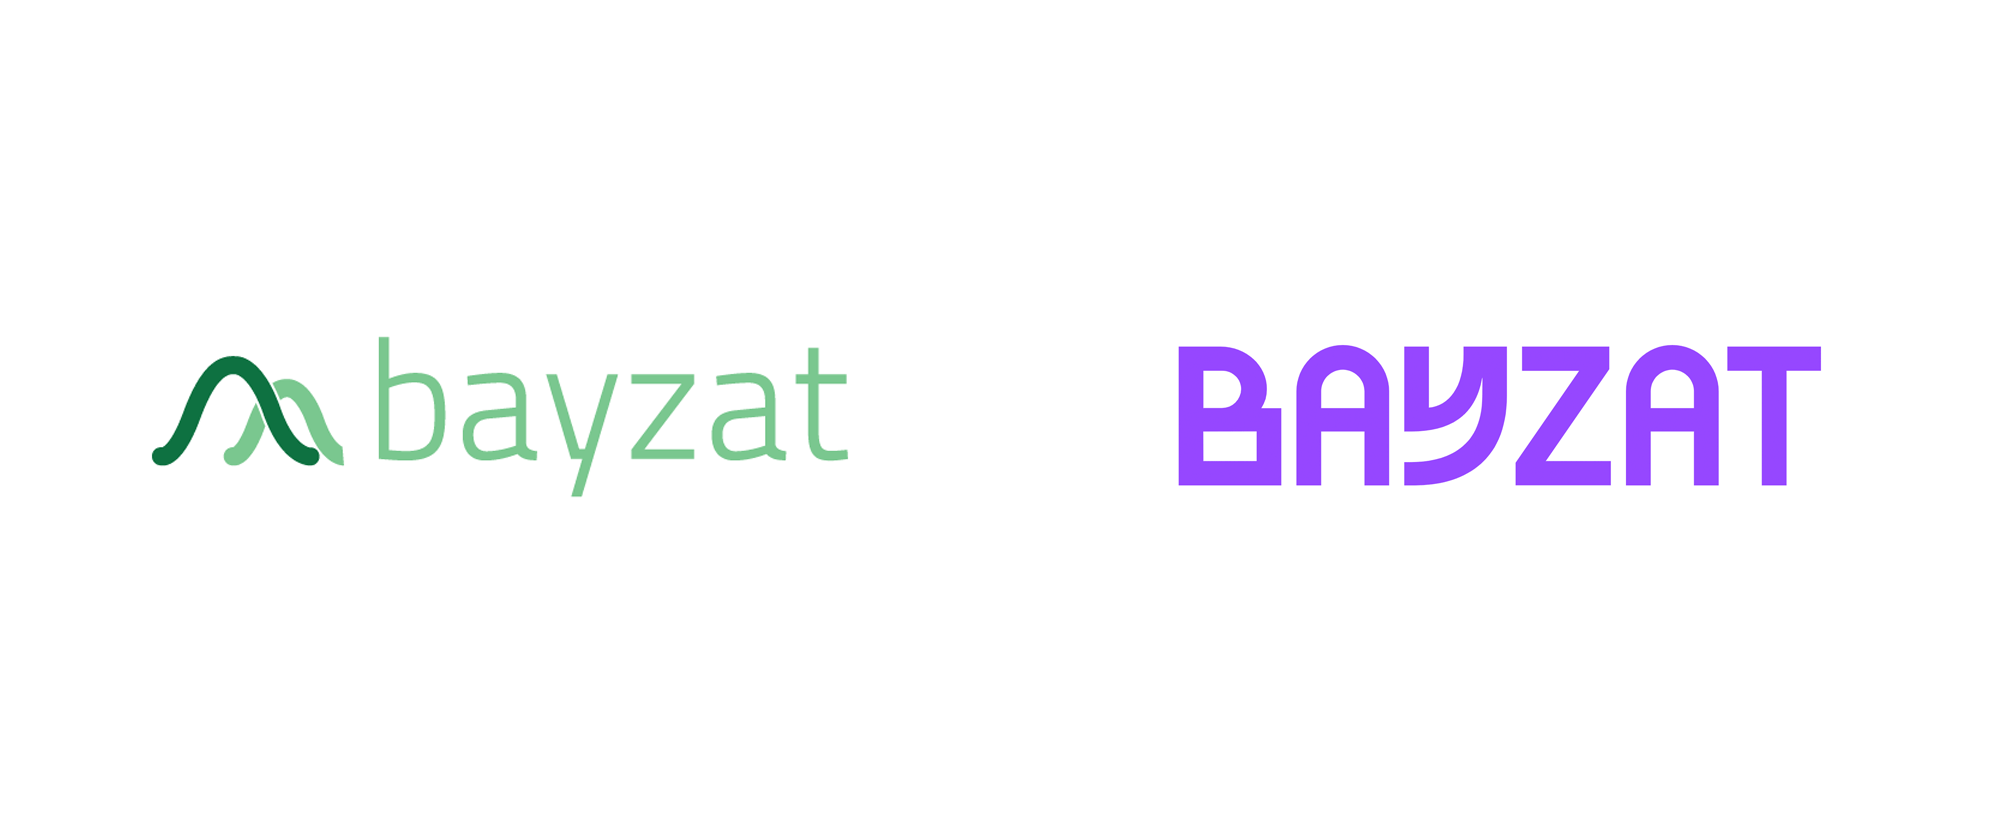 New Logo and Identity for Bayzat by Ragged Edge